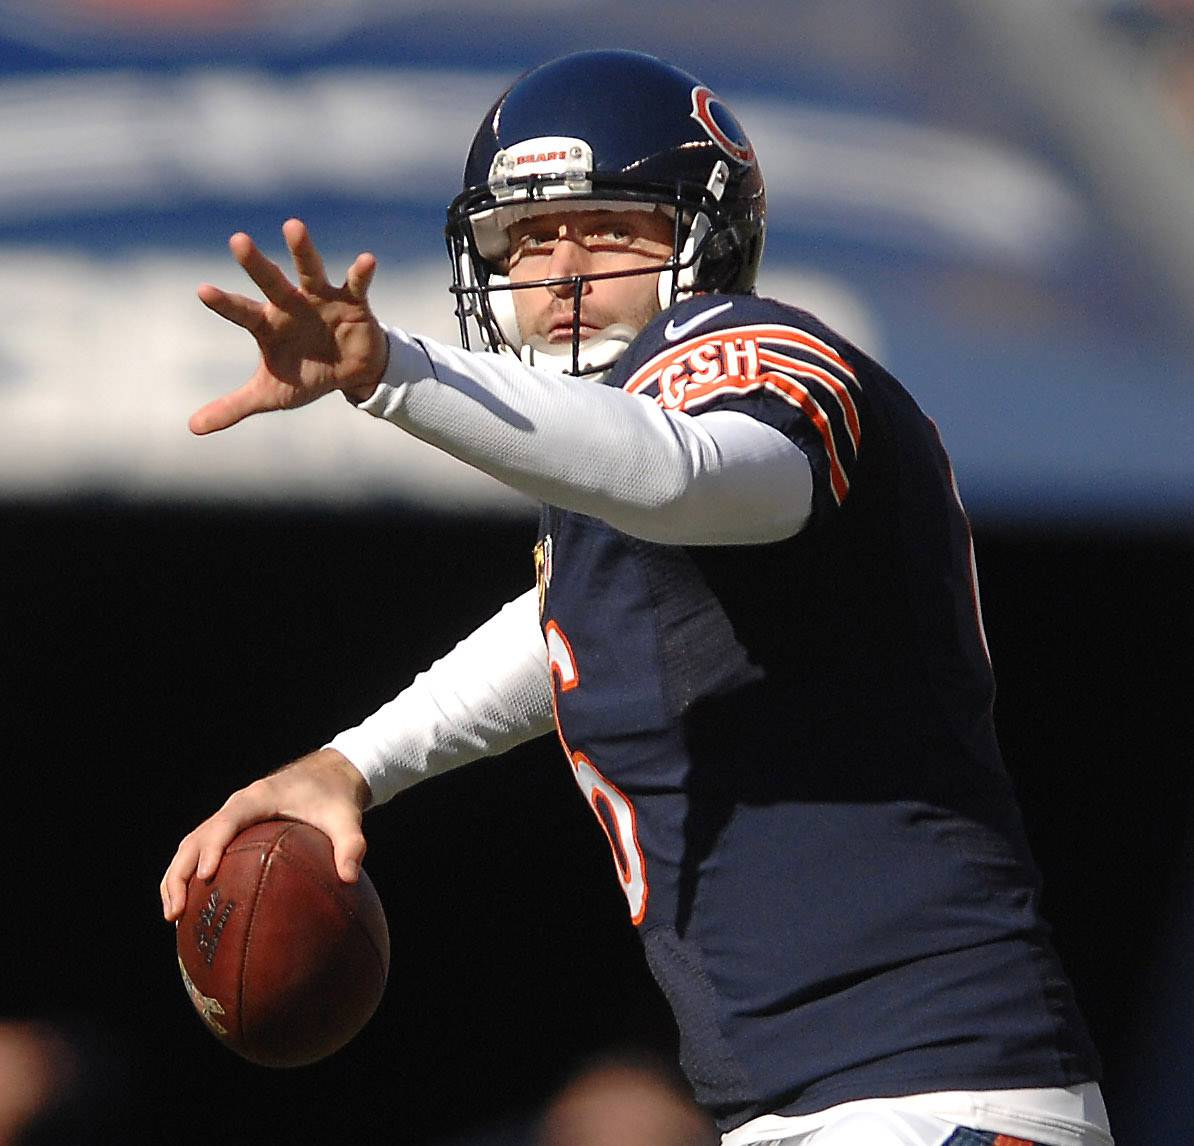 While Bears quarterback Jay Cutler received big support from his bosses in the form of a lucrative contract, former Bears general manager Jerry Angelo's scouting report on the veteran QB was far from glowing.